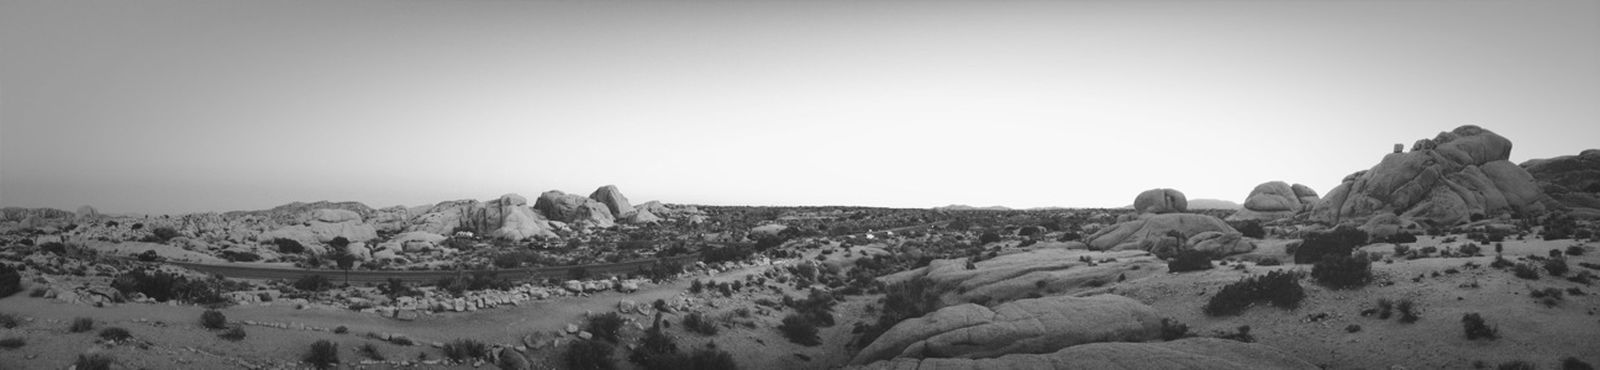 Blackandwhite Panorama Joshua Tree California Dreamin